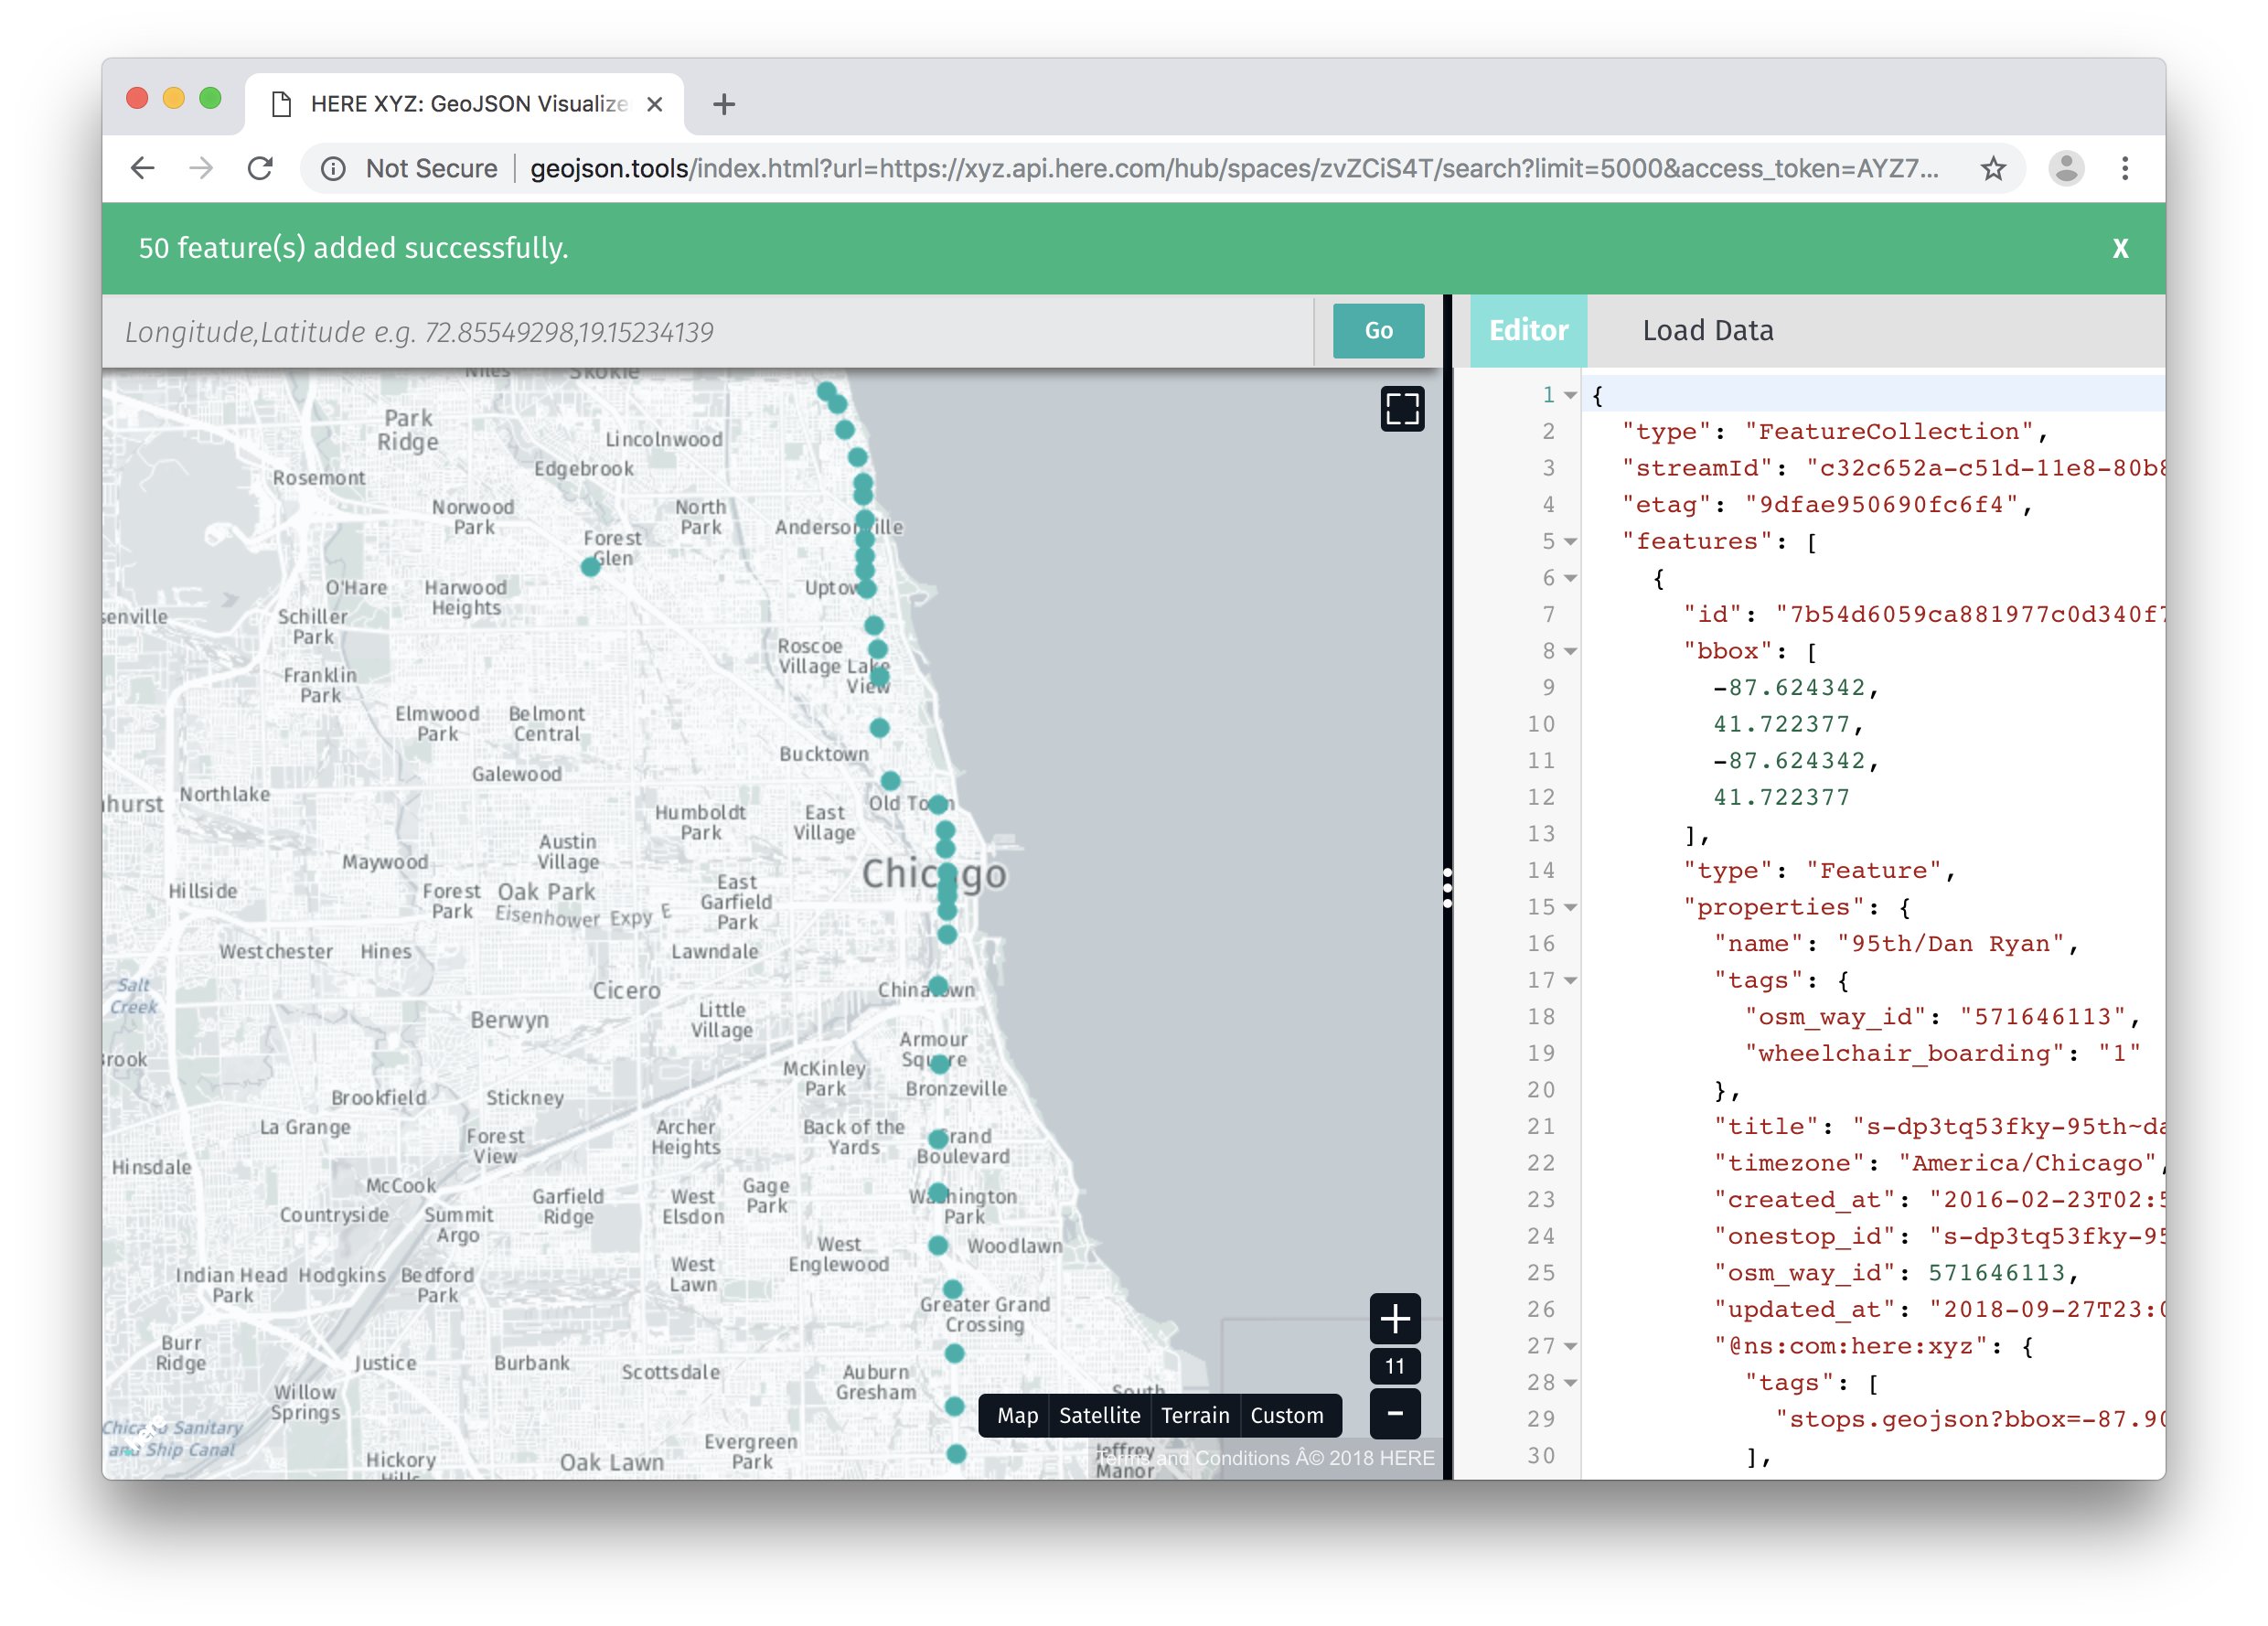 Build an Interactive Web Map of Subway Stations and Routes